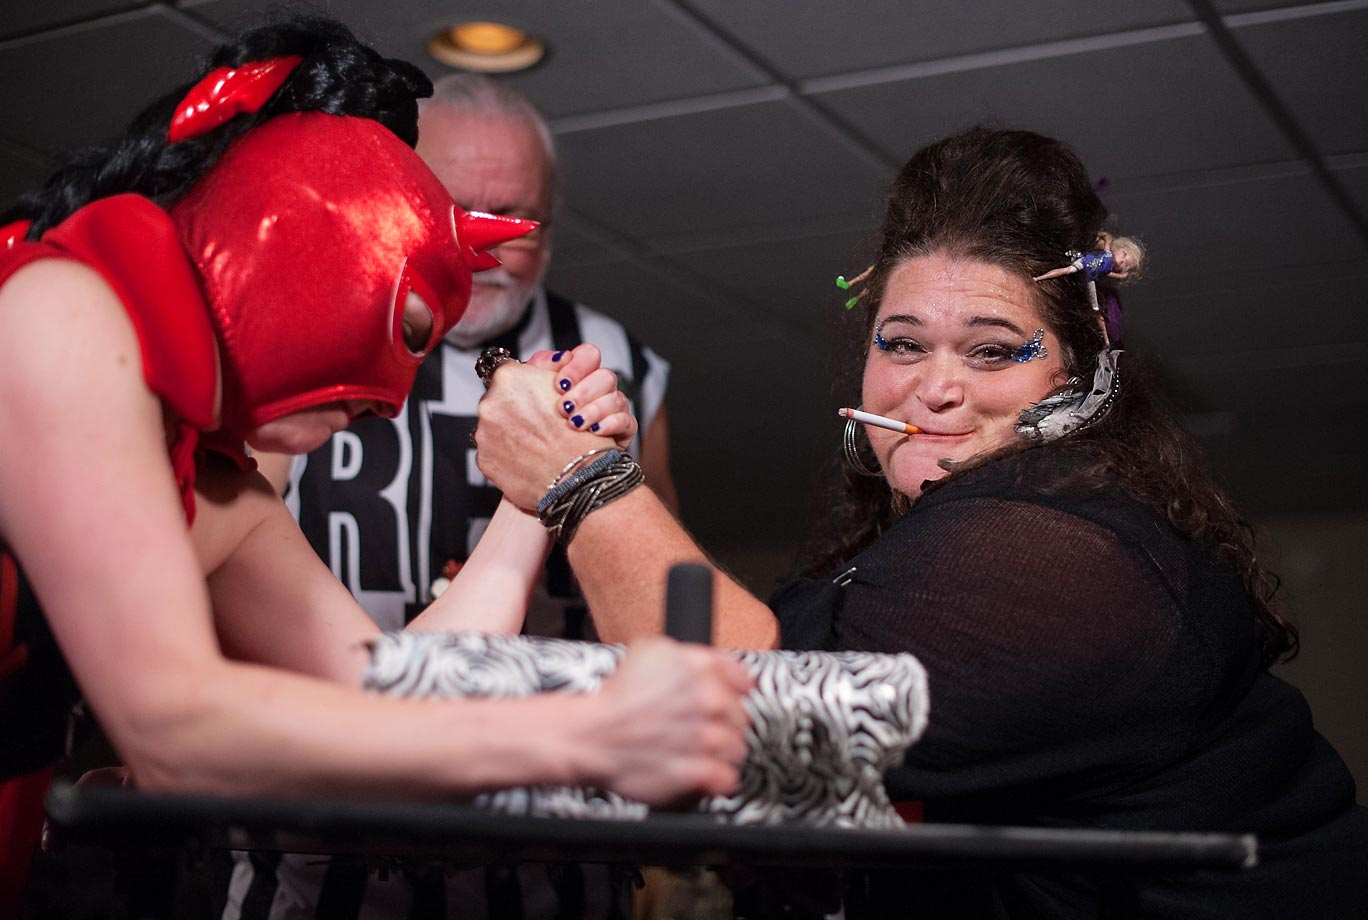 "Amy Smackhouse of the DC Lady Arm Wrestlers (aka D/CLAW) was one smokin' mama as she battled Dona Diabla at the Summer Smackdown in our nation's capital. The charity matches are said to combine ""pro wrestling antics with bouts of sassy strength."""